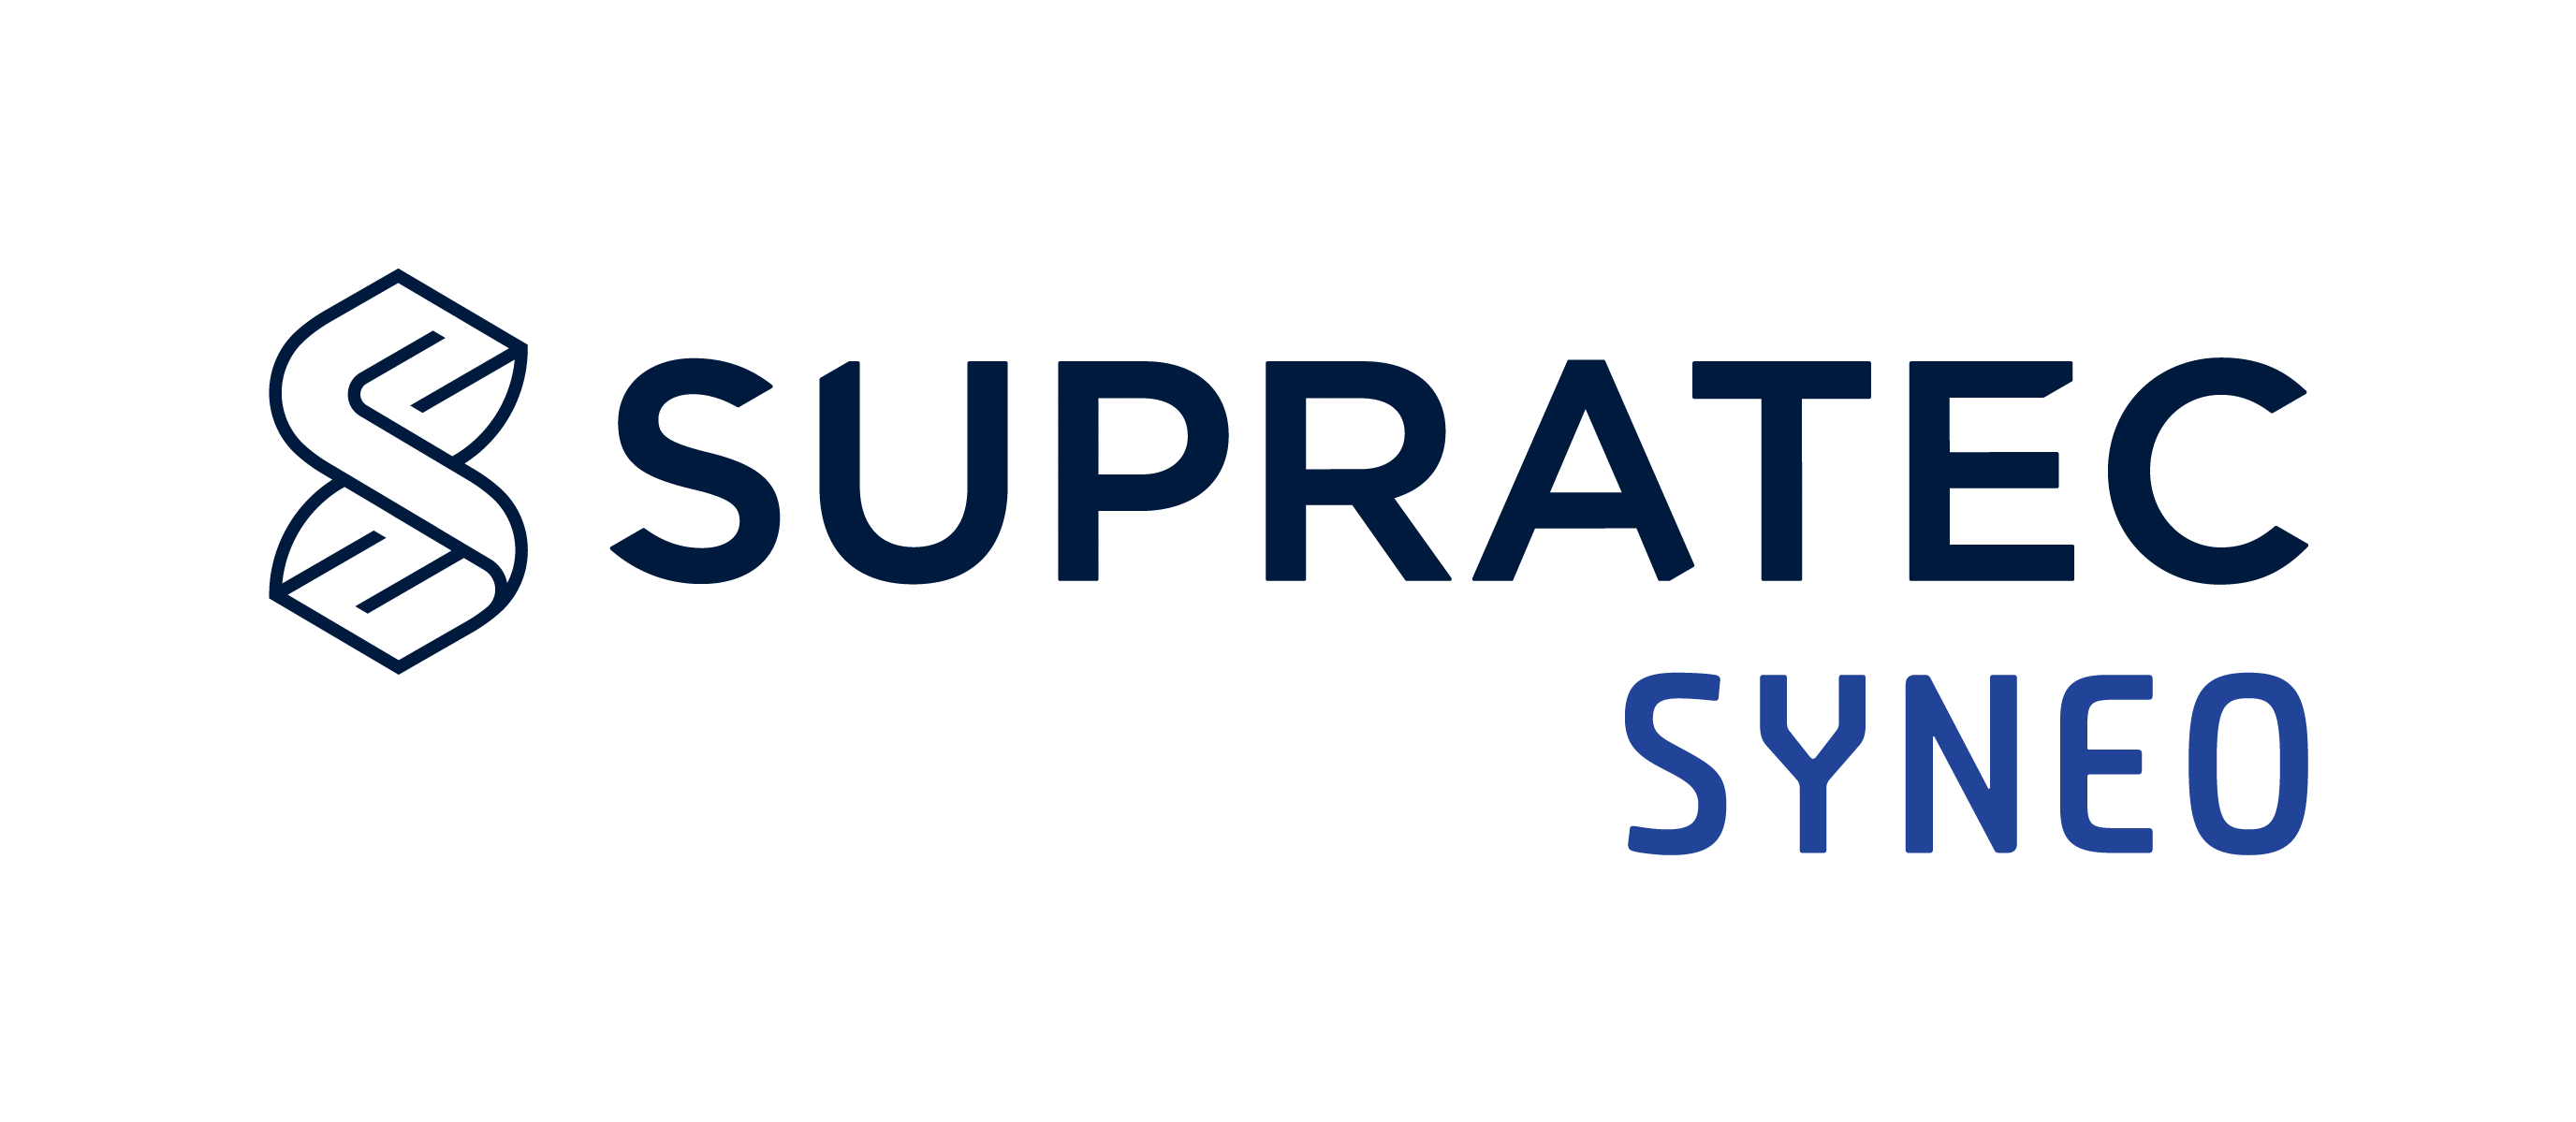 the brand SUPRATEC Syneo